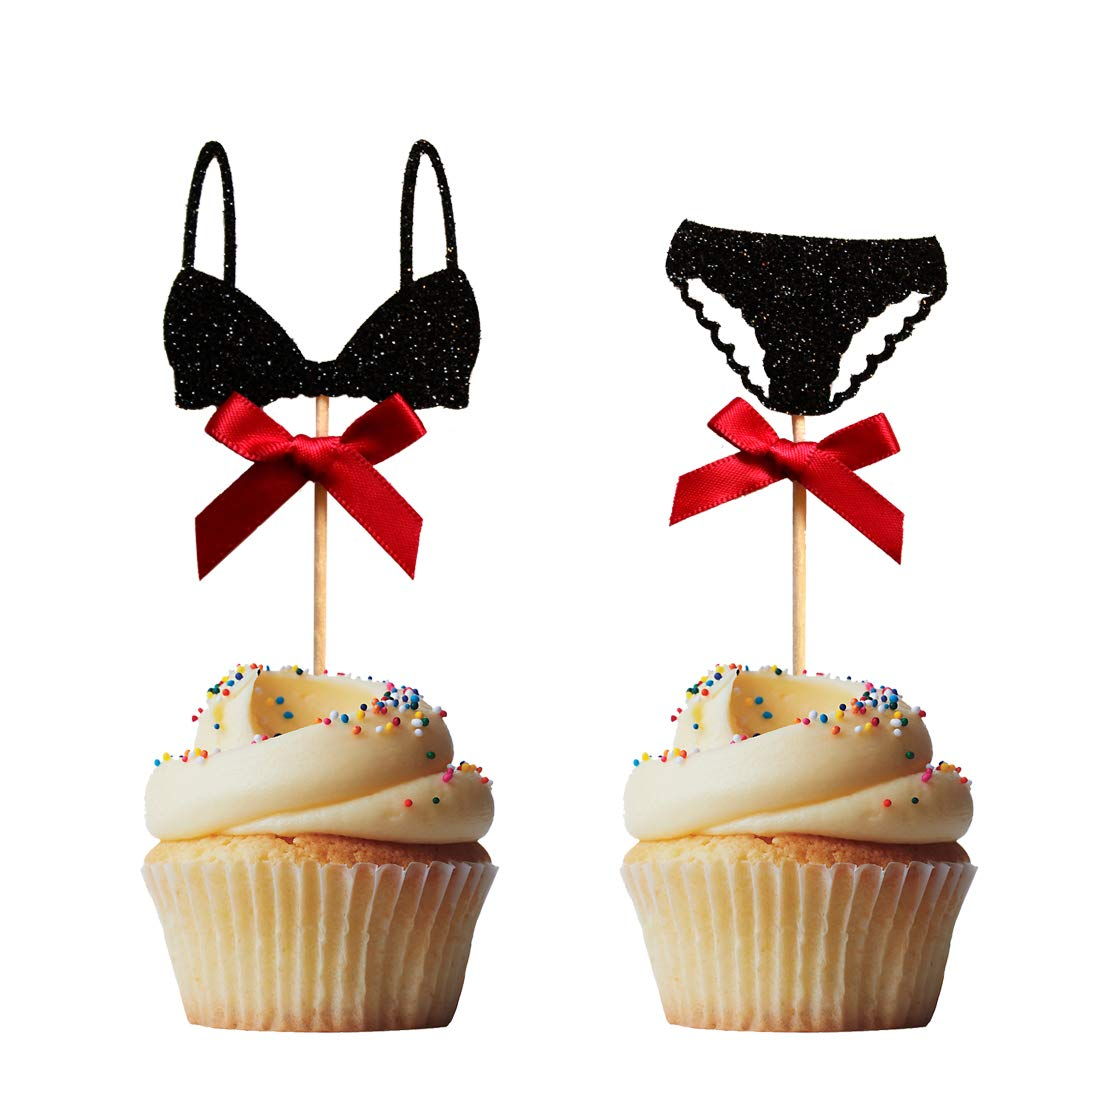 Morndew 24PCS Black Lingerie Hen Party Cupcake Toppers for Birthday Party Bridal Shower Wedding Party Dessert Decorations